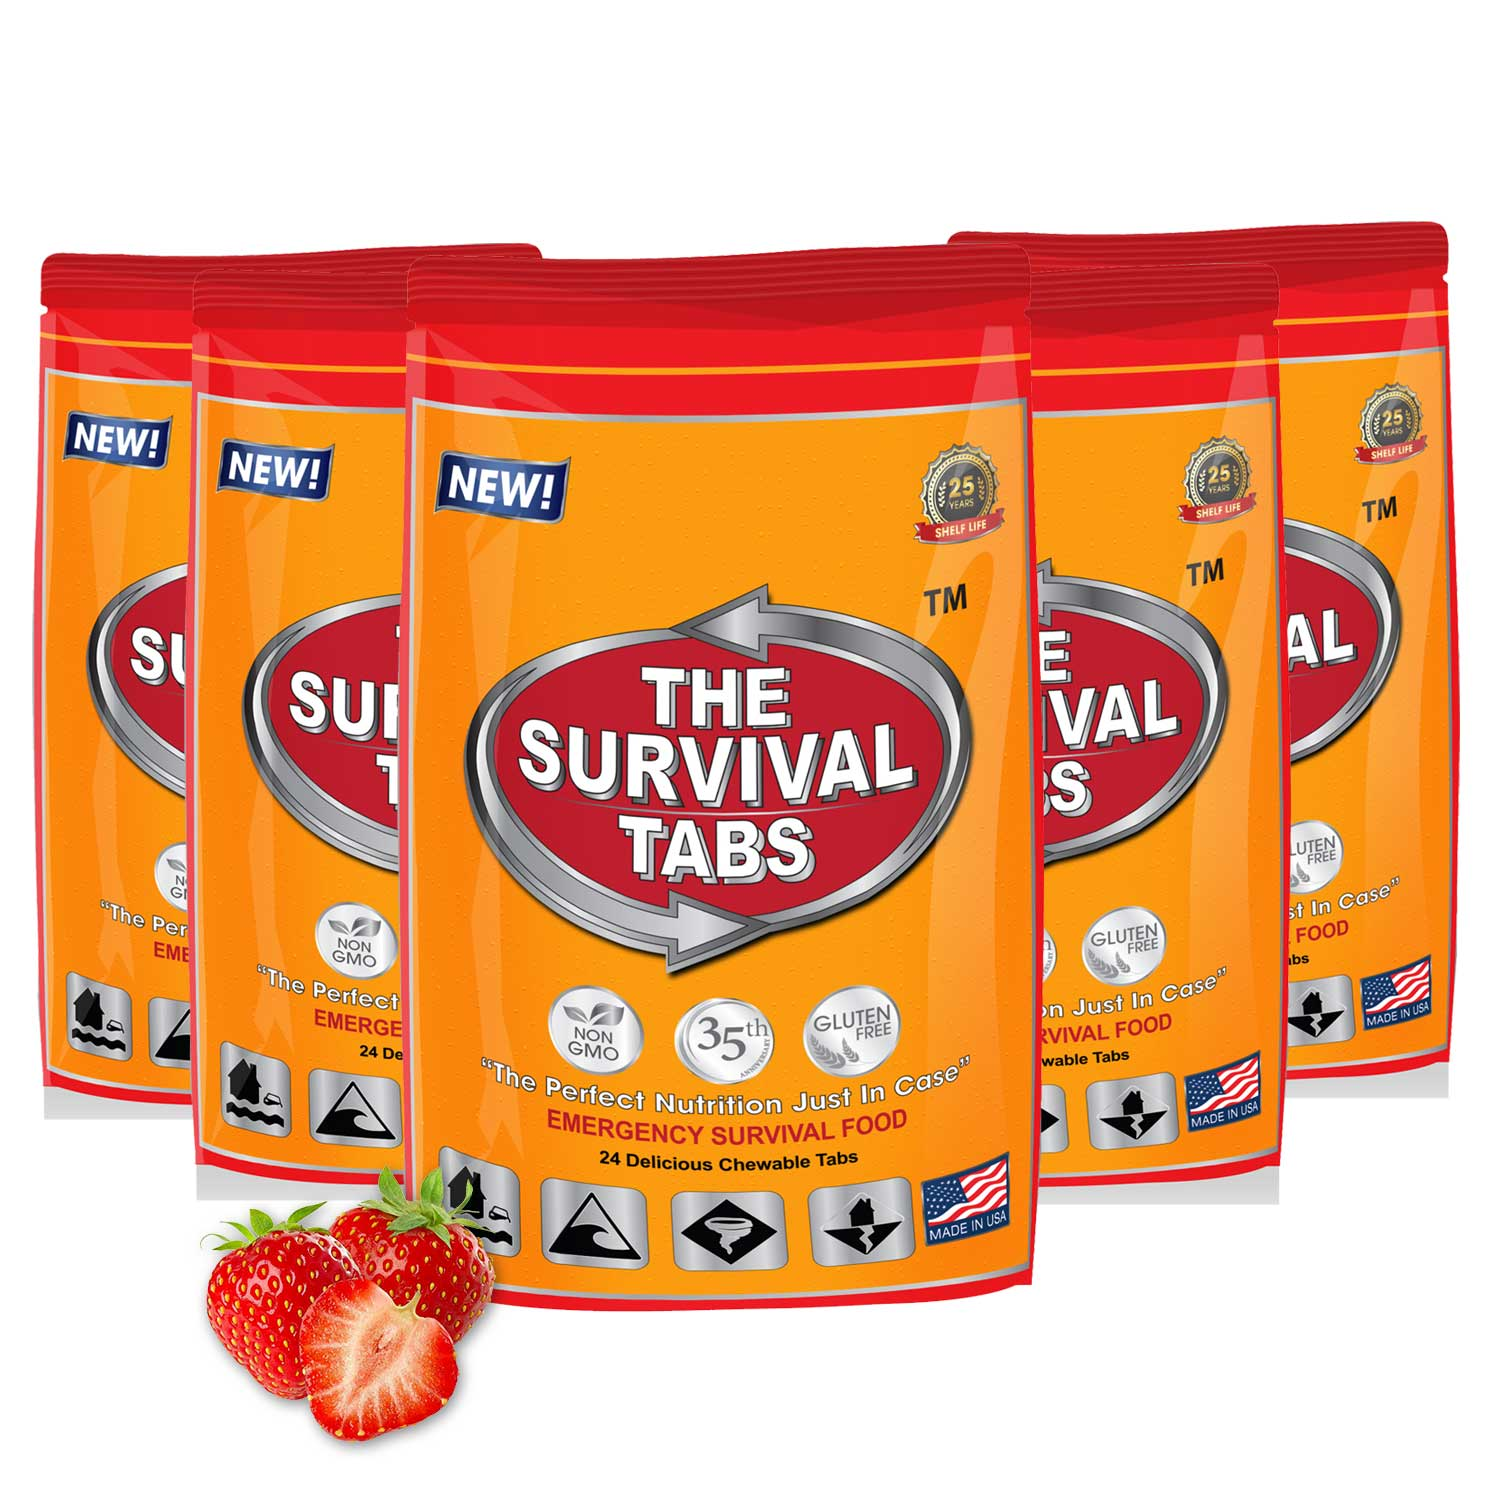 Click here to buy Survival Tabs 10 Day 120 Tabs Emergency Food Survival MREs Meal Replacement for Disaster Preparedness Gluten Free and Non-GMO 25 Years Shelf....